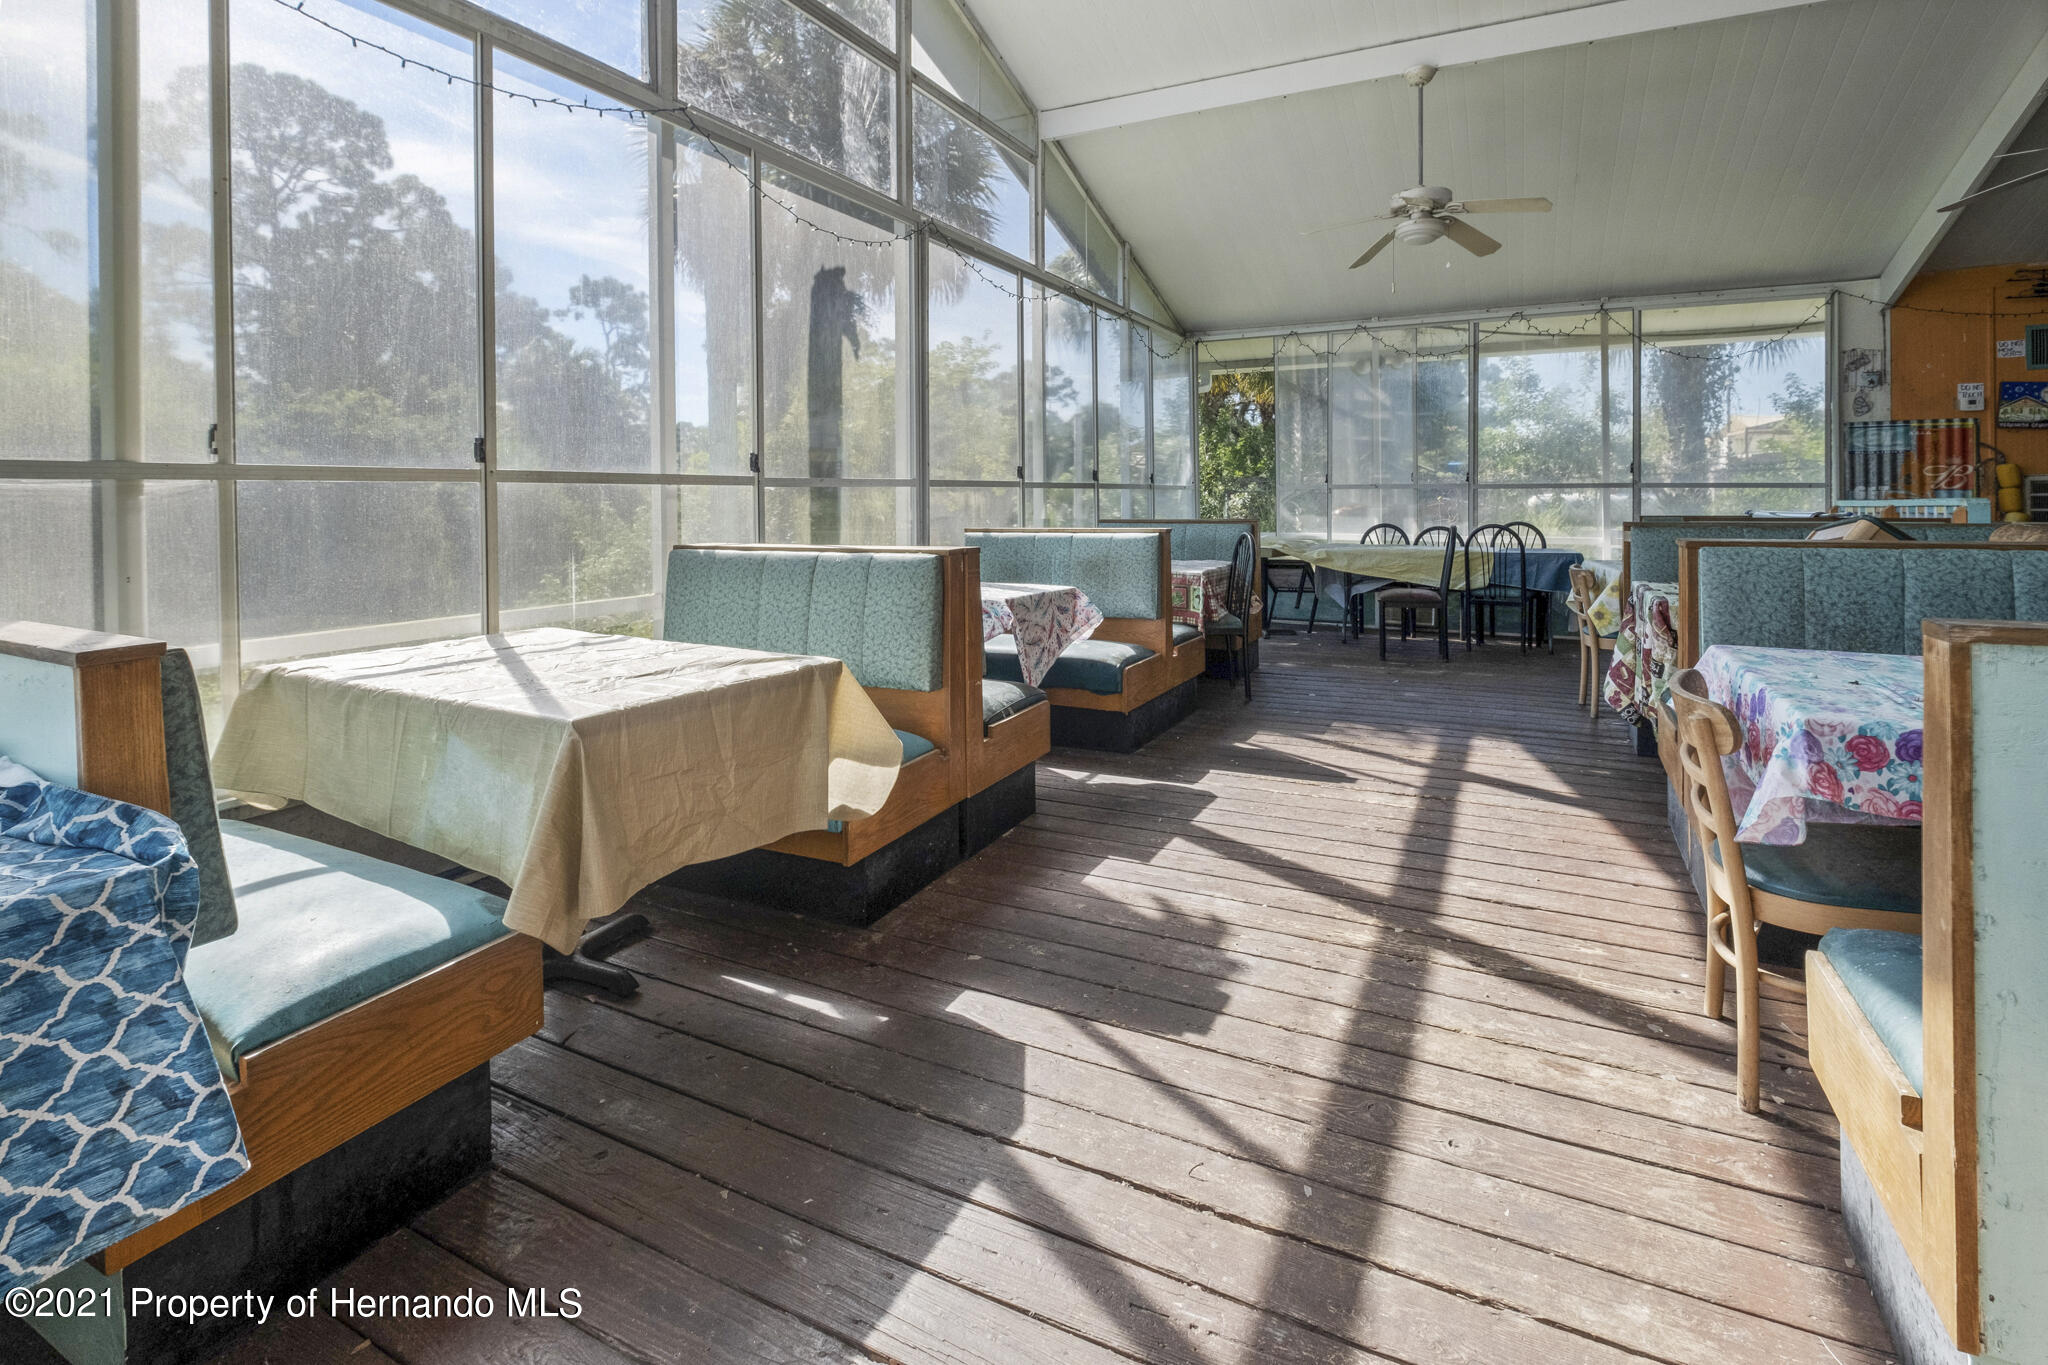 Image 43 of 43 For 4054 Shoal Line Boulevard